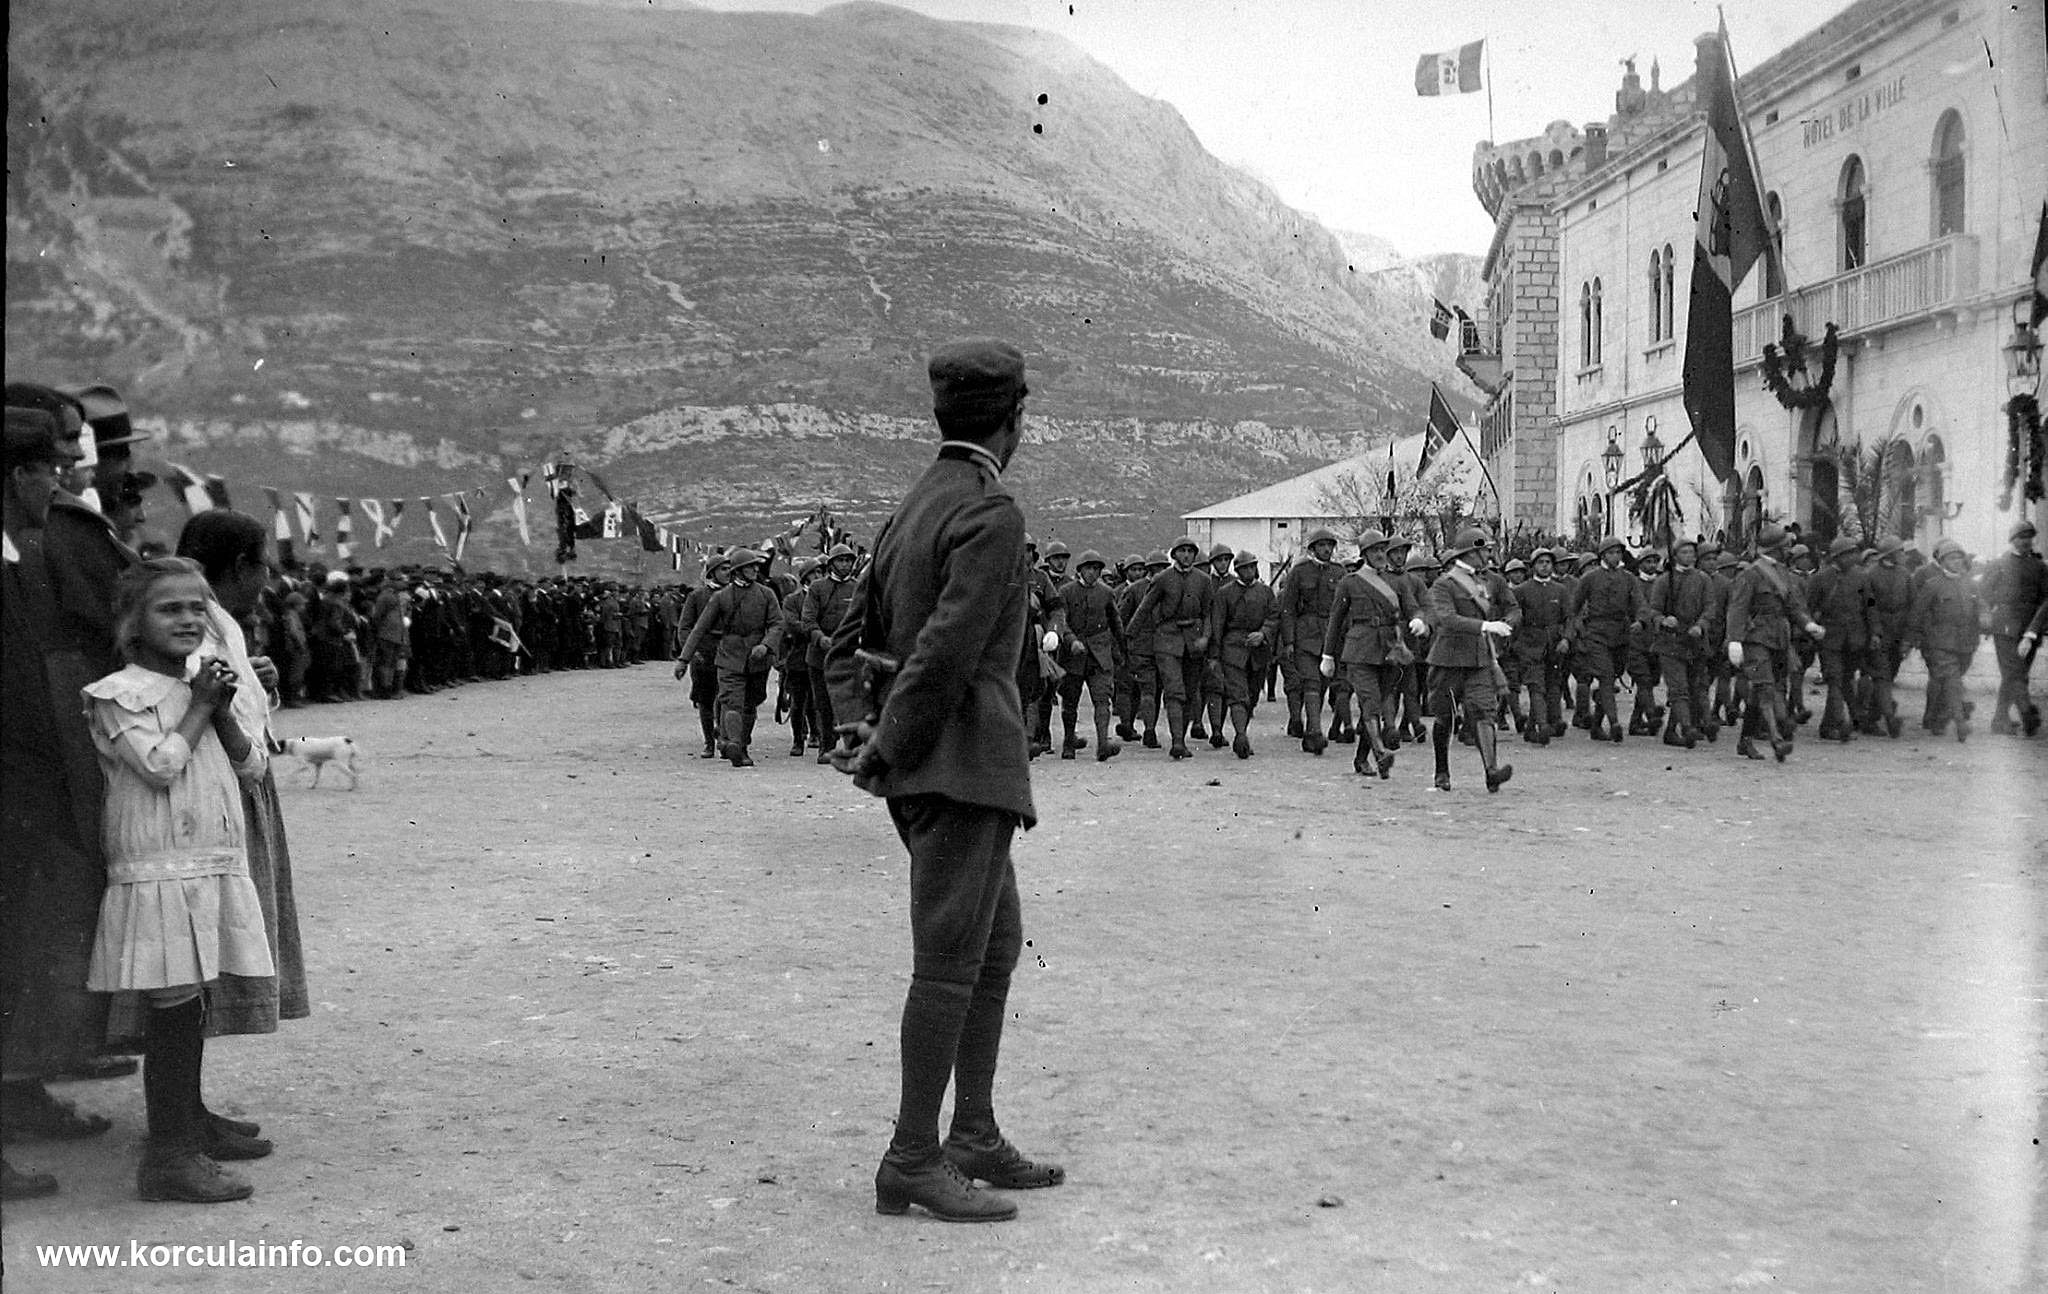 Italian Soldiers at Riva in Korcula in 1911